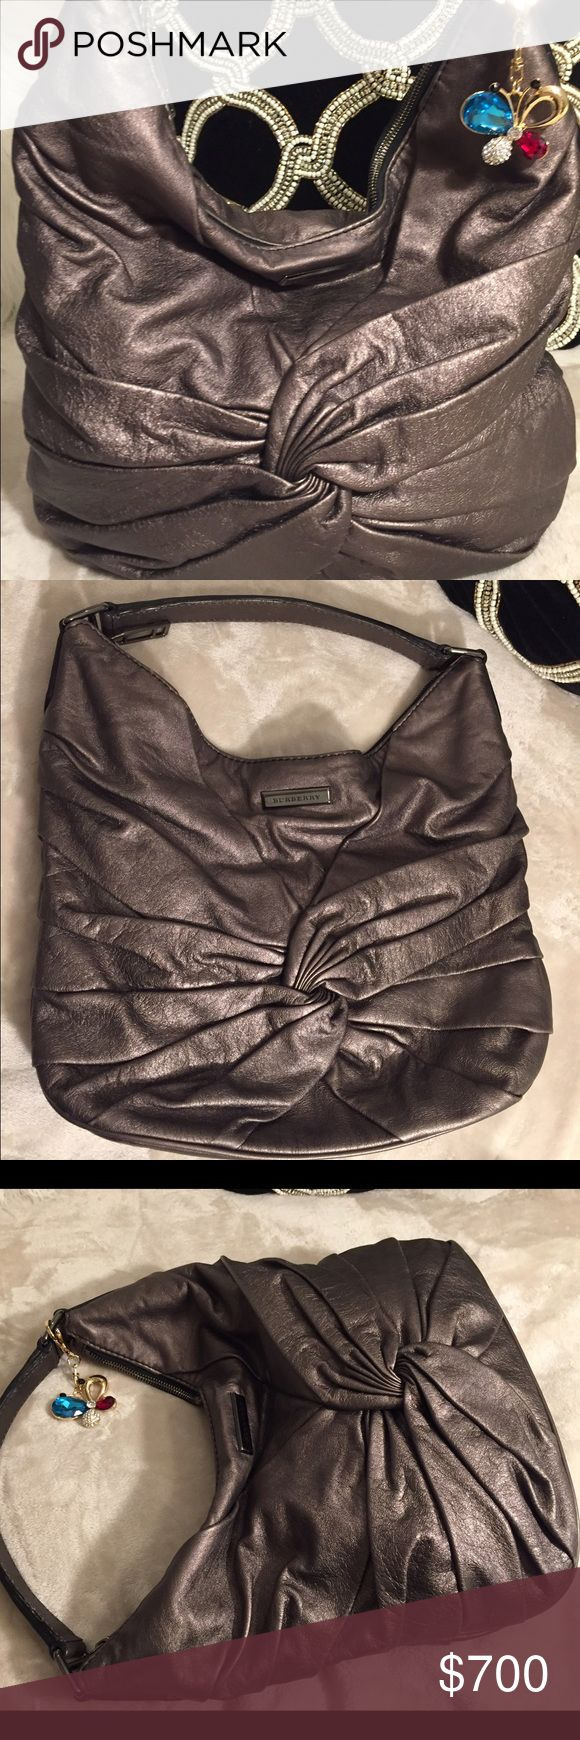 Burberry metallic Maggie knot bag New Burberry Lamb skin Maggie knot hobo bag! Sexy metallic color bag with gunmetal hardwear. This bag is simple yet very stylish. 😍 it's an everyday use bag!! Has classic check nova Burberry interior with a very modern look on exterior. 🌟ONLY SELLING🌟 Burberry Bags Hobos